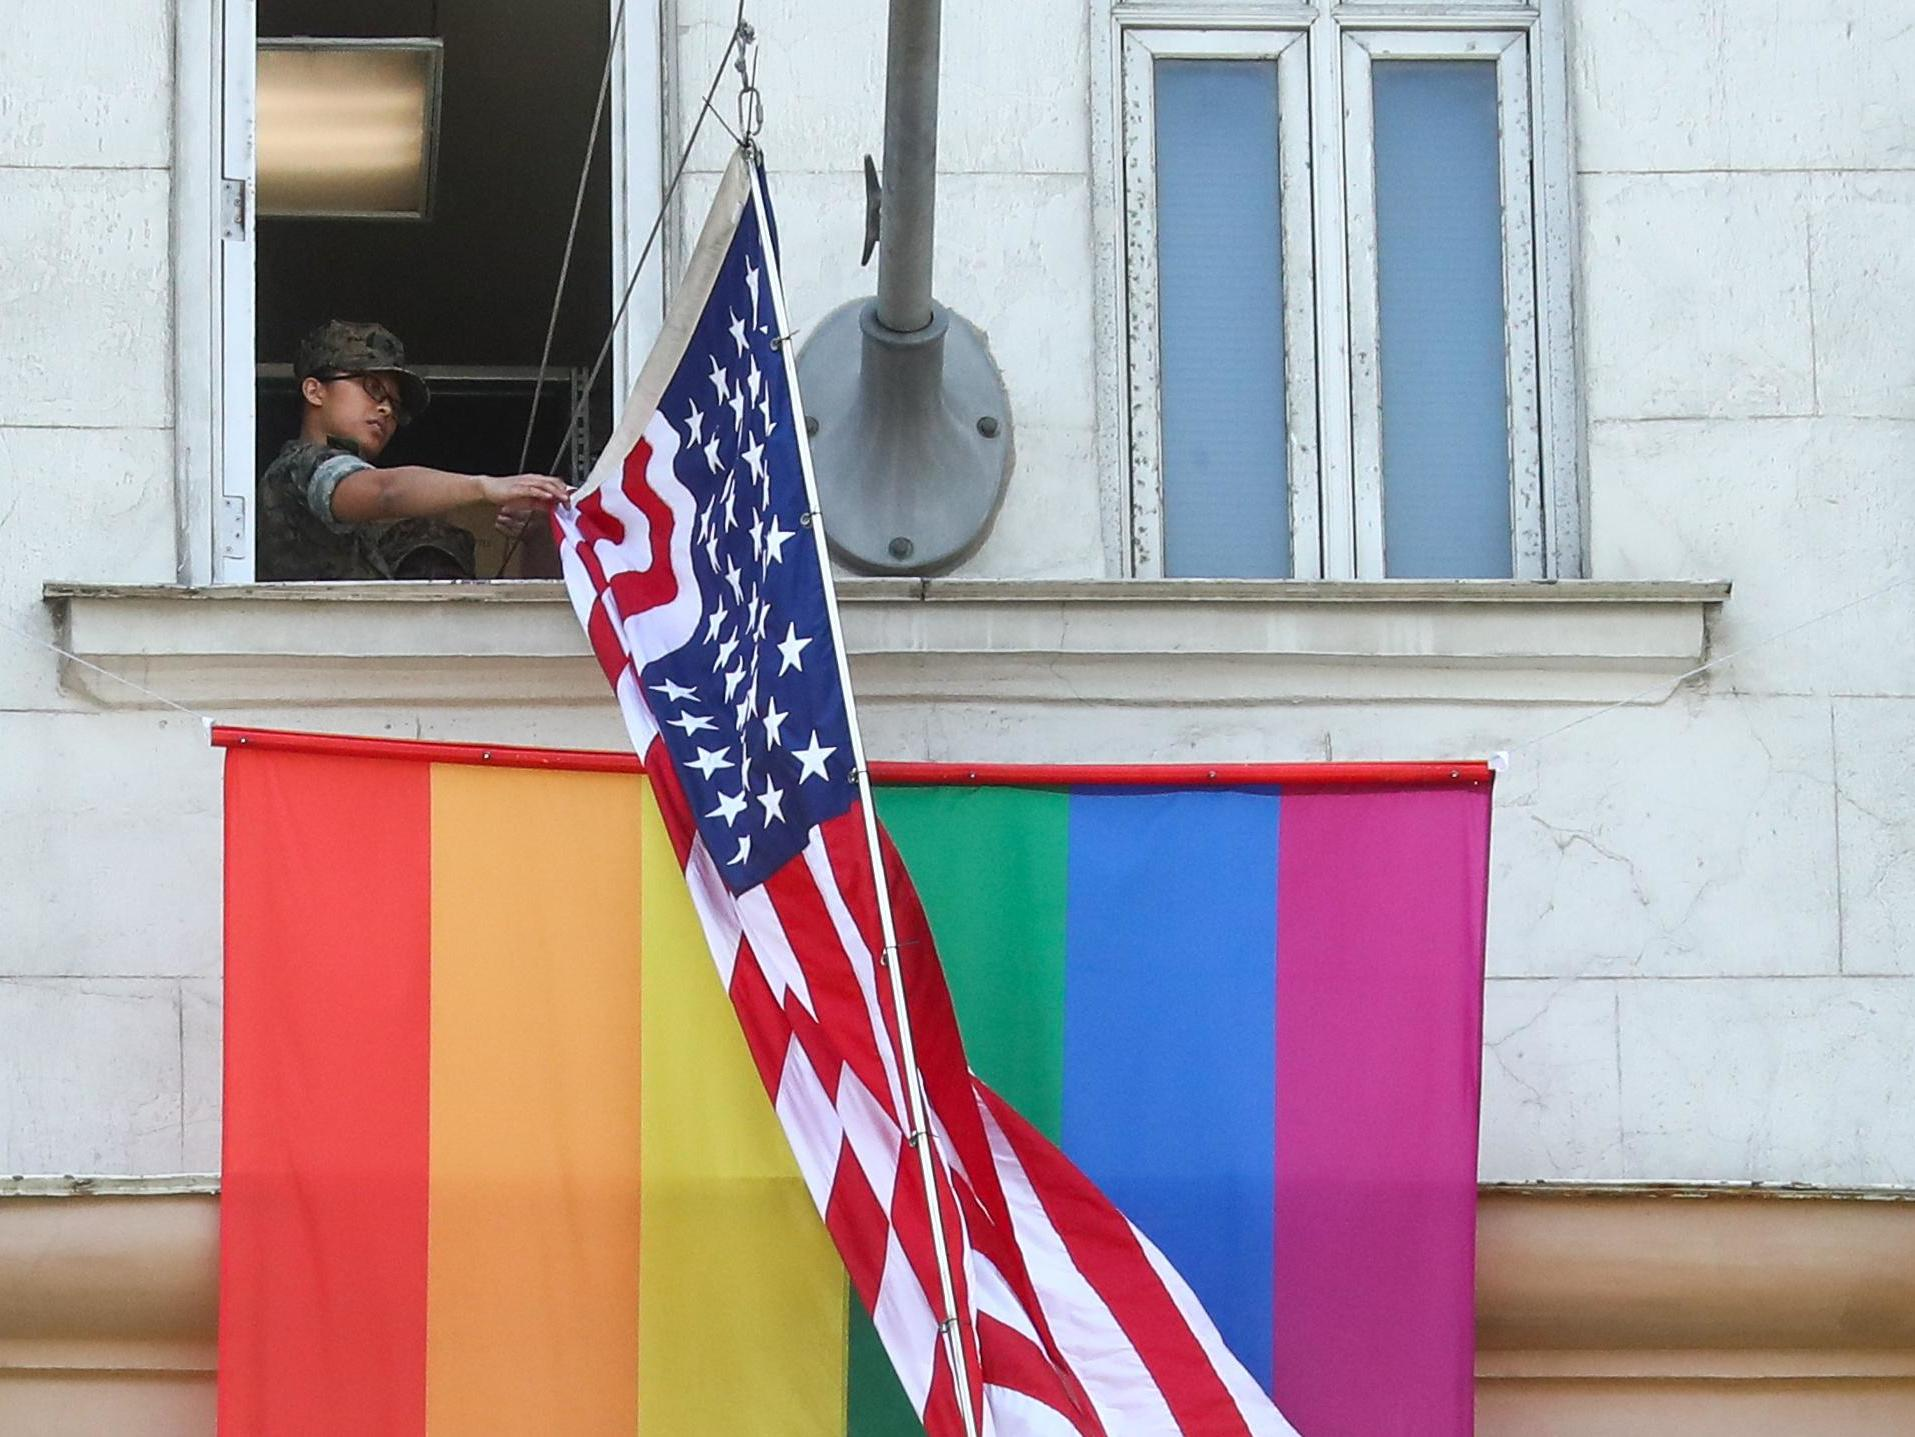 Putin ridicules US embassy for flying LGBT+ pride flag